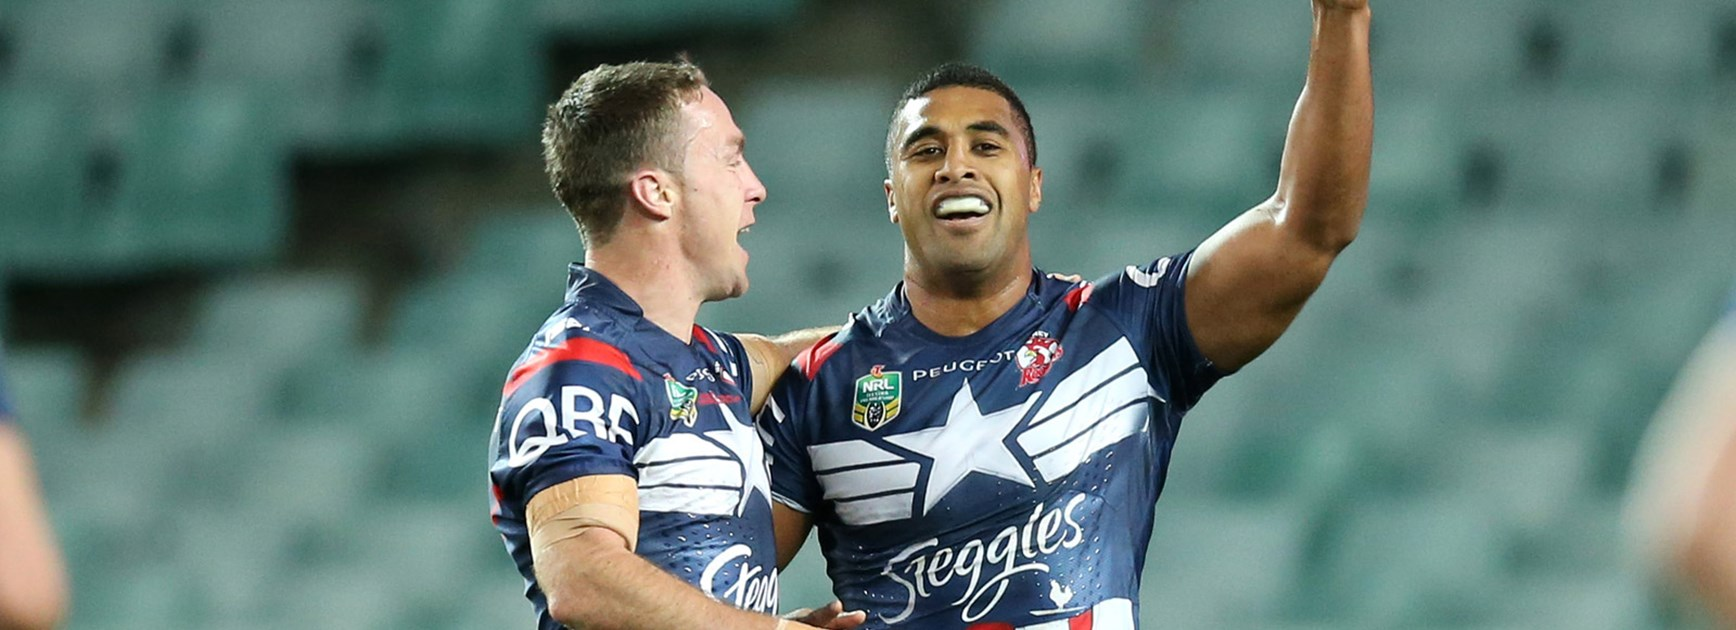 Michael Jennings and James Maloney in the Roosters' win over the Dogs.